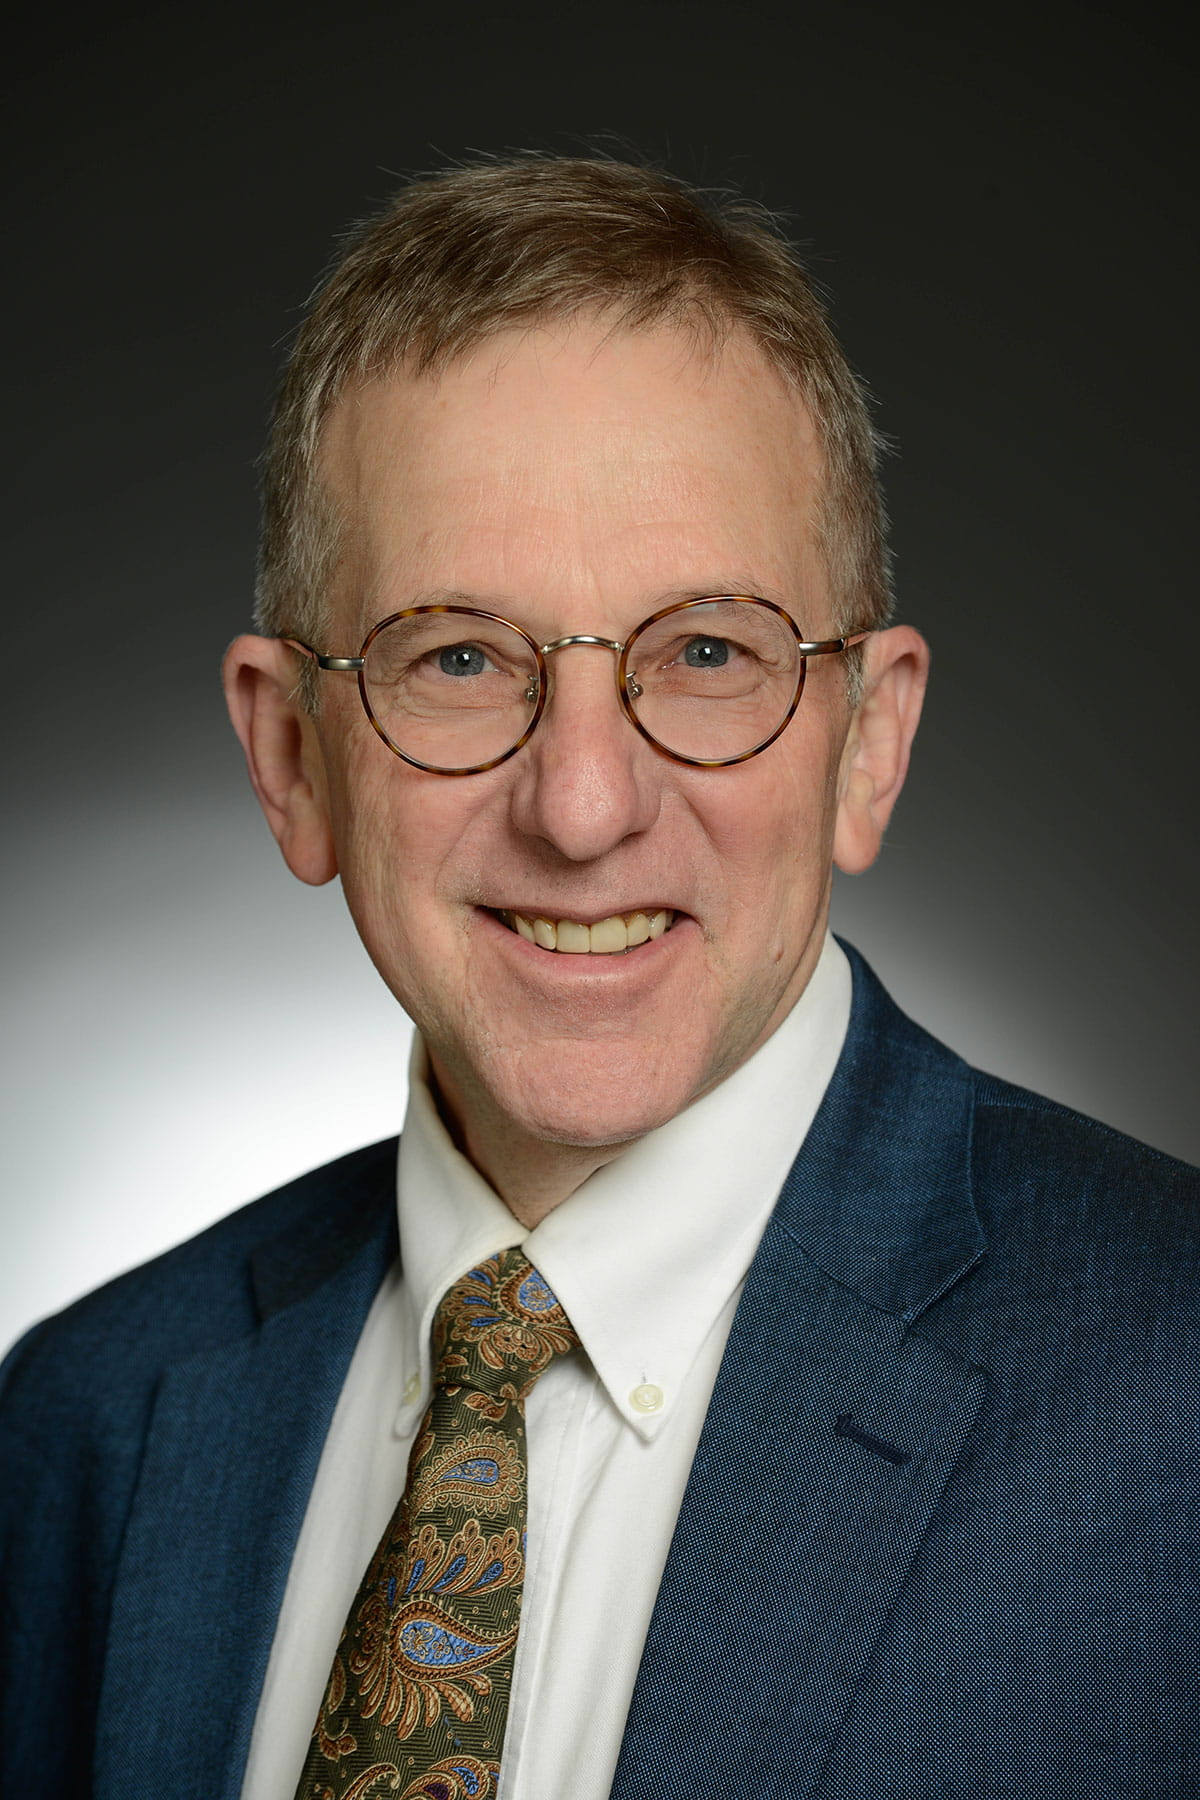 A photo of Robert Siegel.